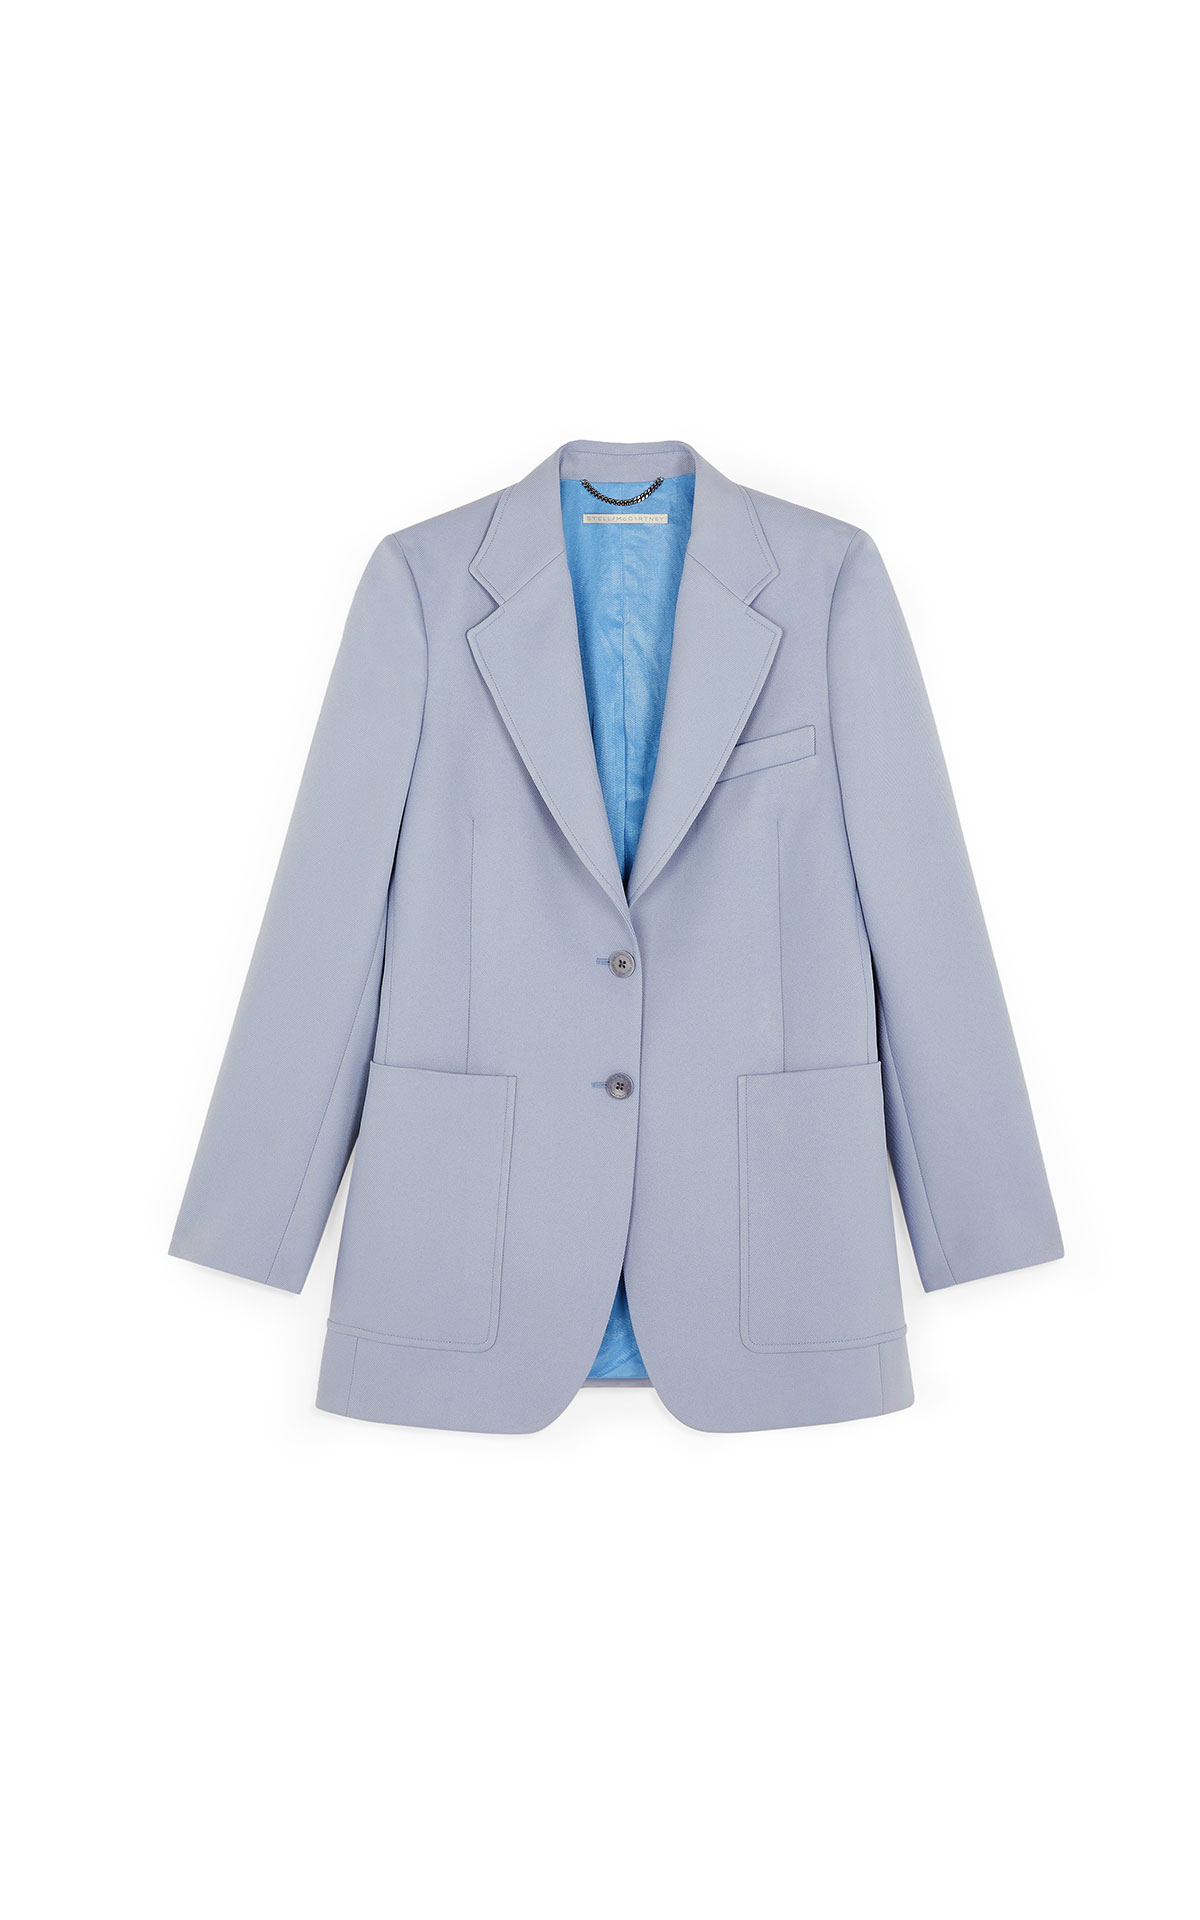 Stella McCartney Blue blazer from Bicester Village